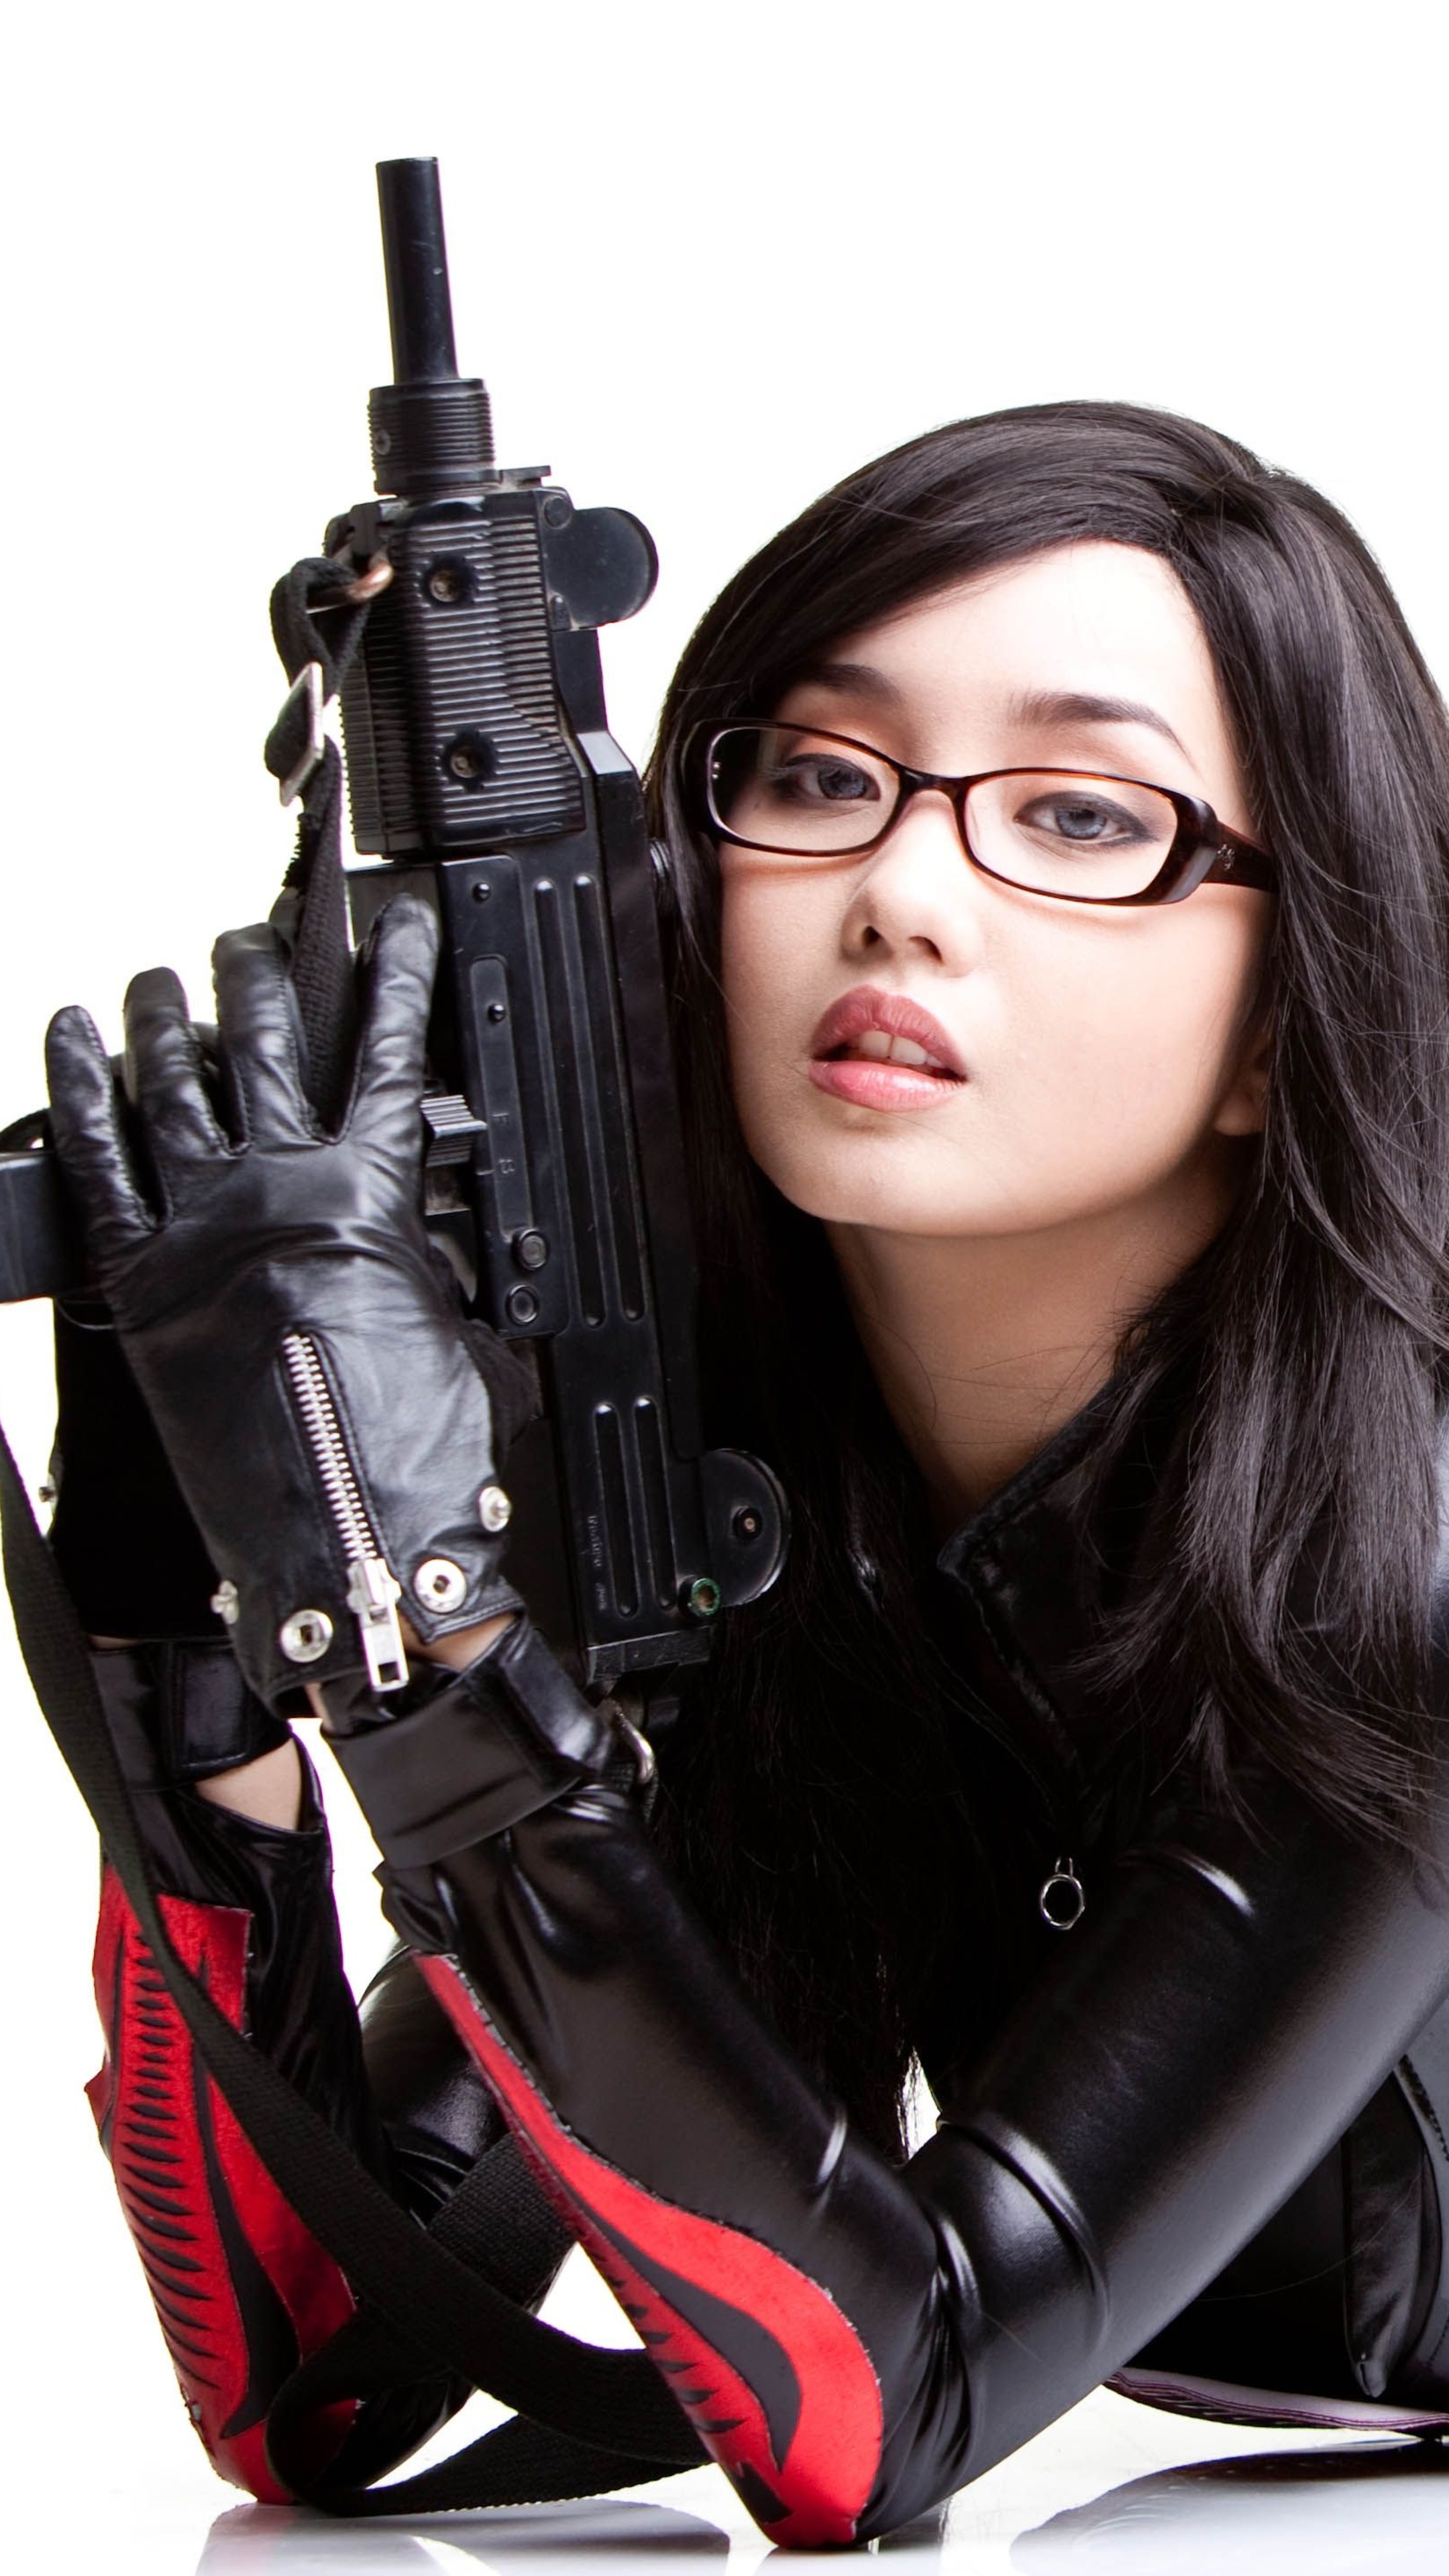 Accept. Cosplay girl with gun above told